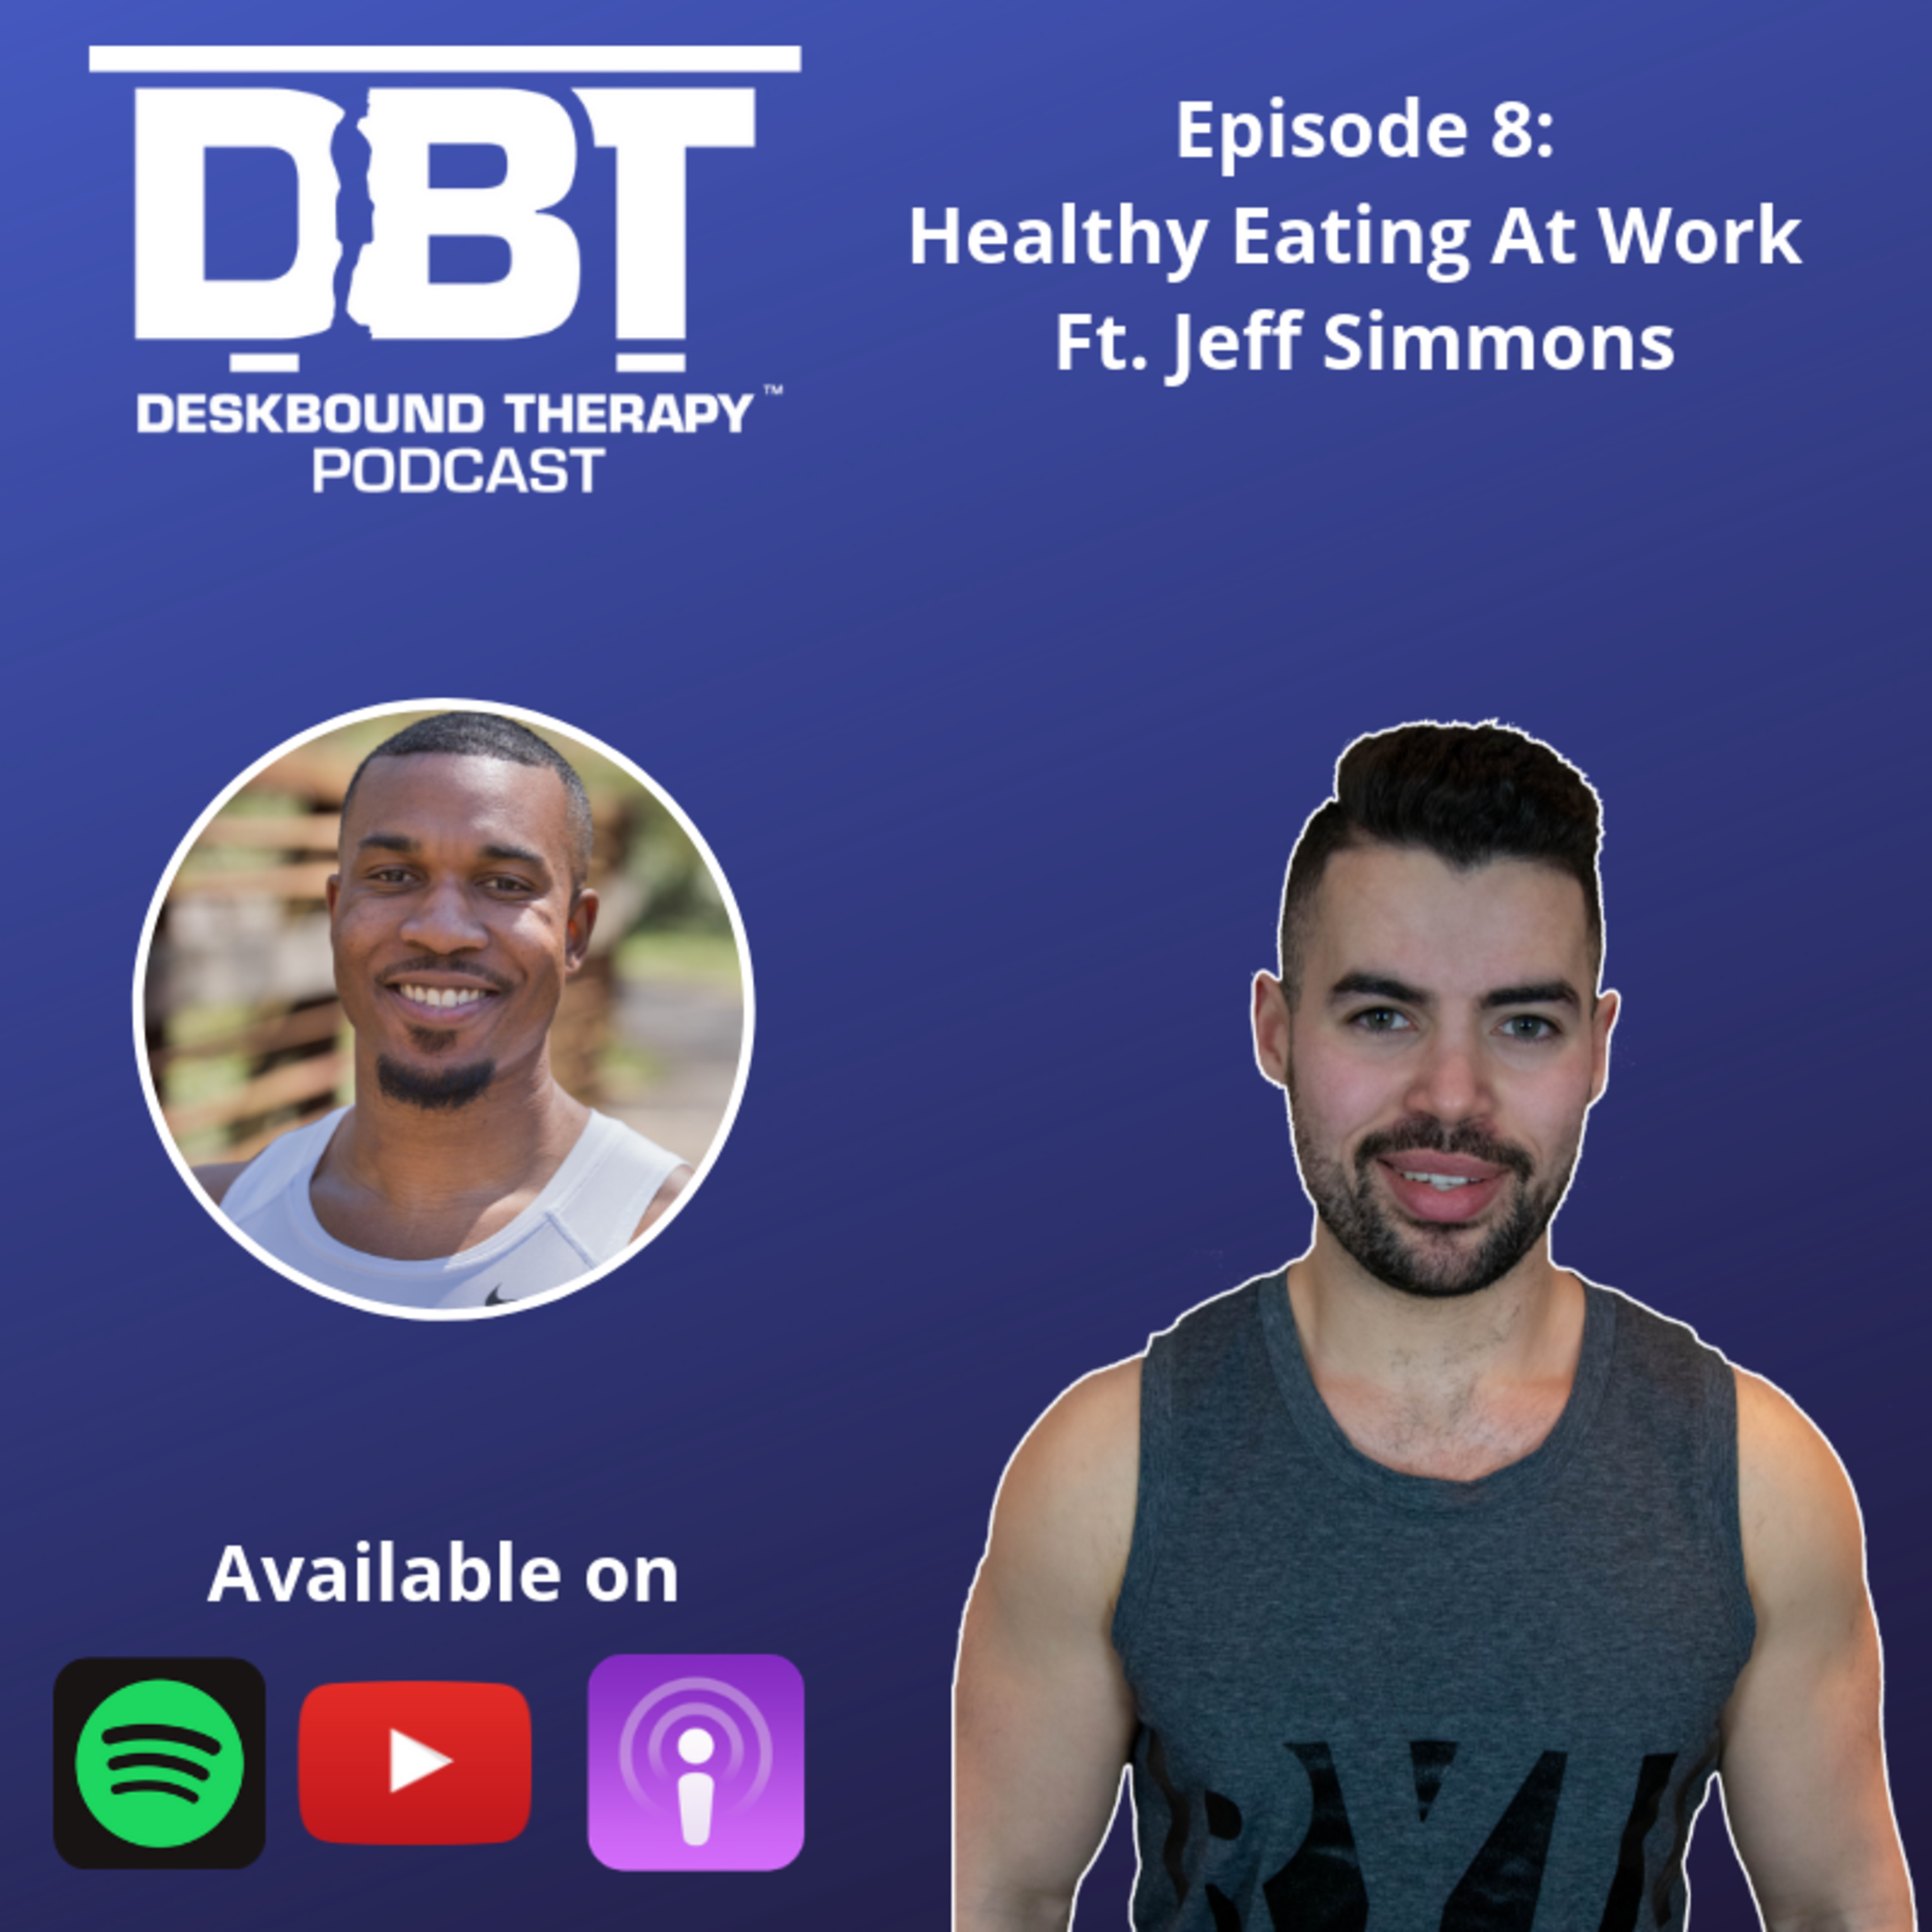 Episode 8 - Eating Healthy at Work Ft. Jeff Simmons